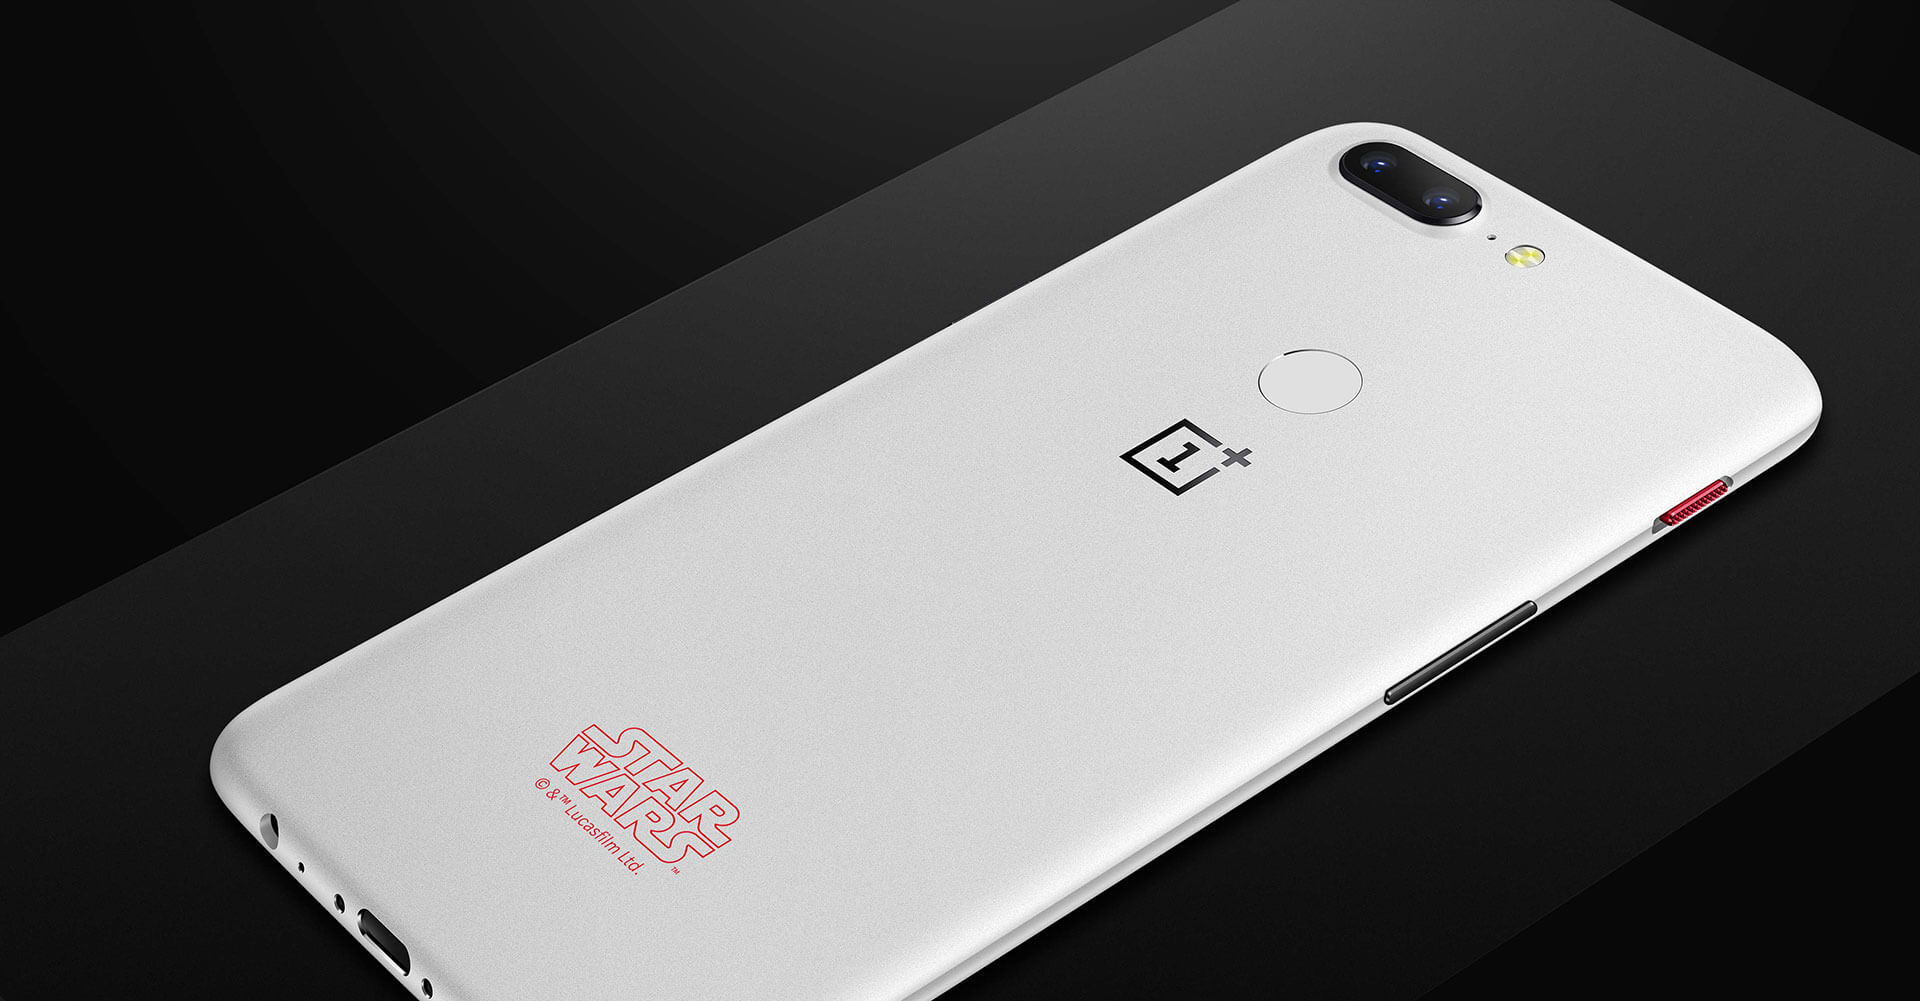 oneplus5t_star_wars_edition_smartphone_1